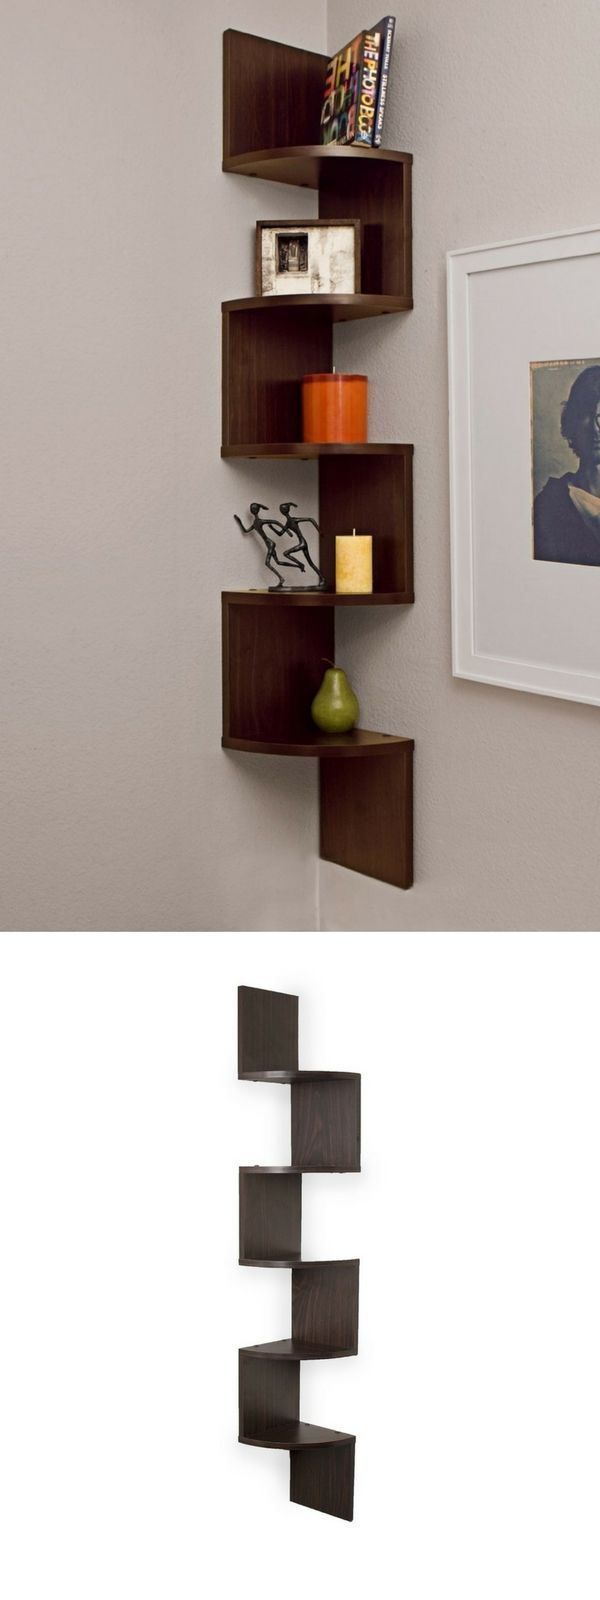 10 Best Bookshelf Ideas For Creative Decorating Projects Small Es And Corner Wall